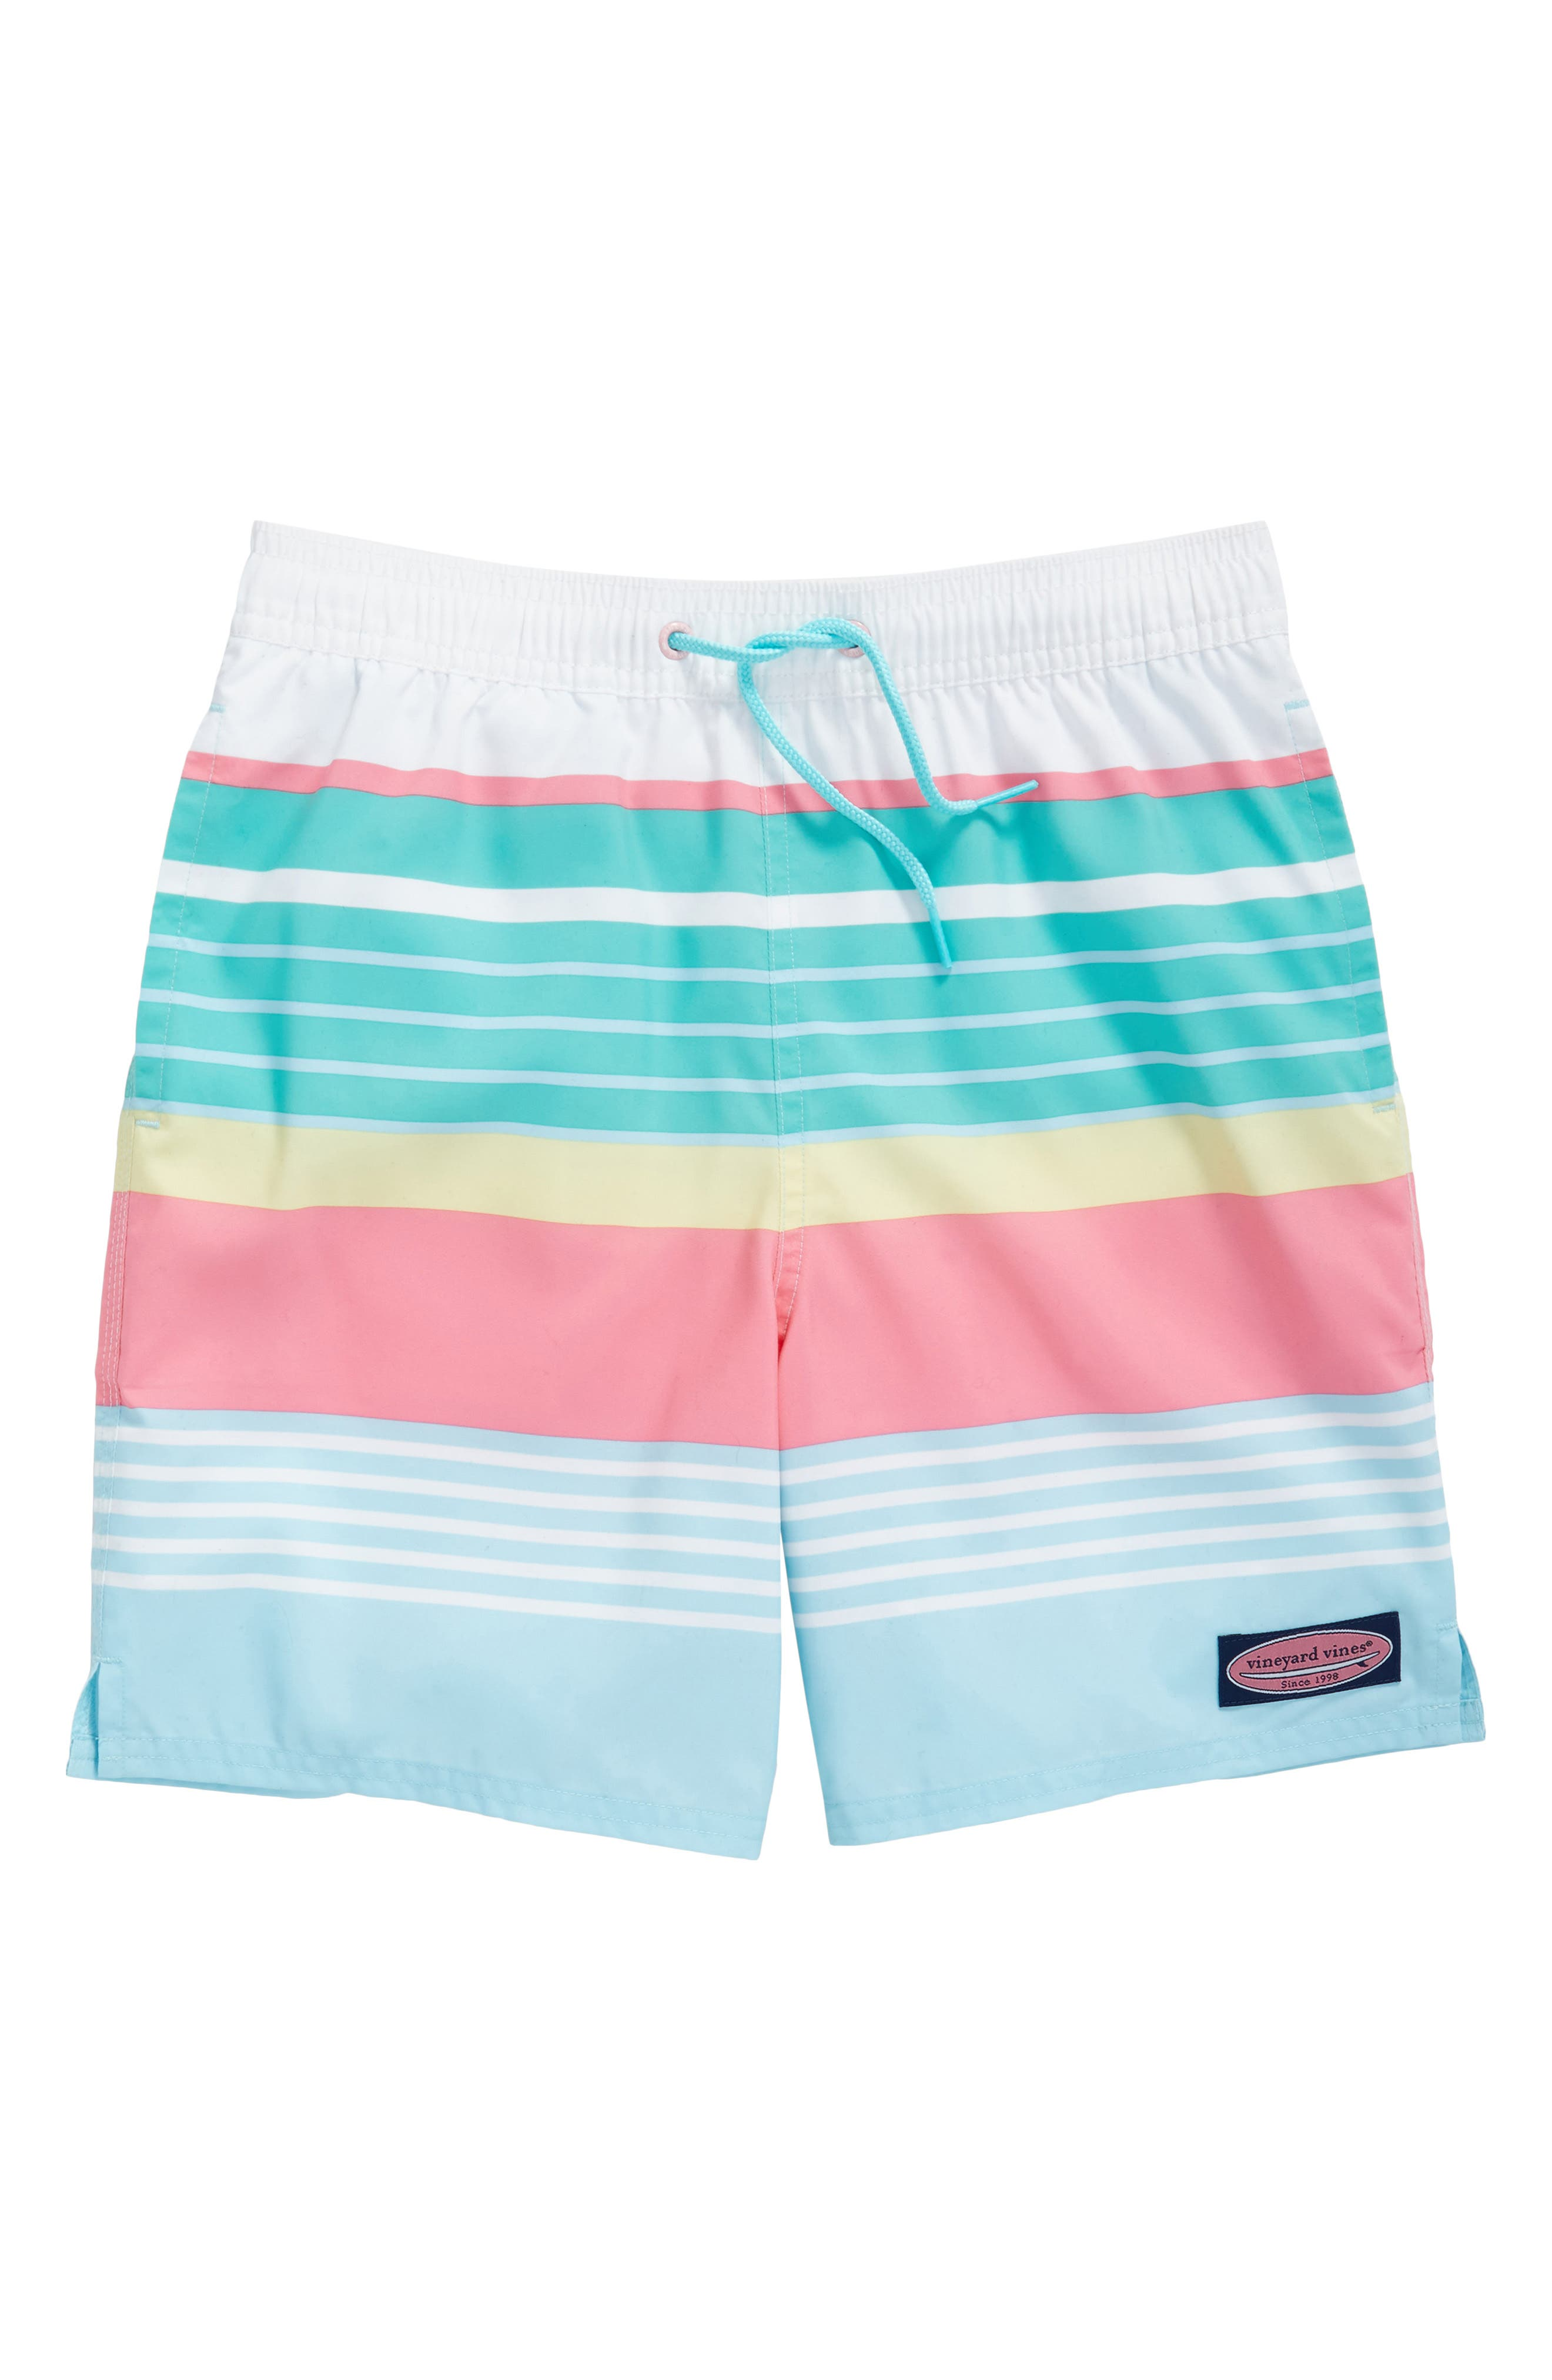 vineyard vines Boca Bay Stripe Chappy Swim Trunks (Toddler Boys & Little Boys)